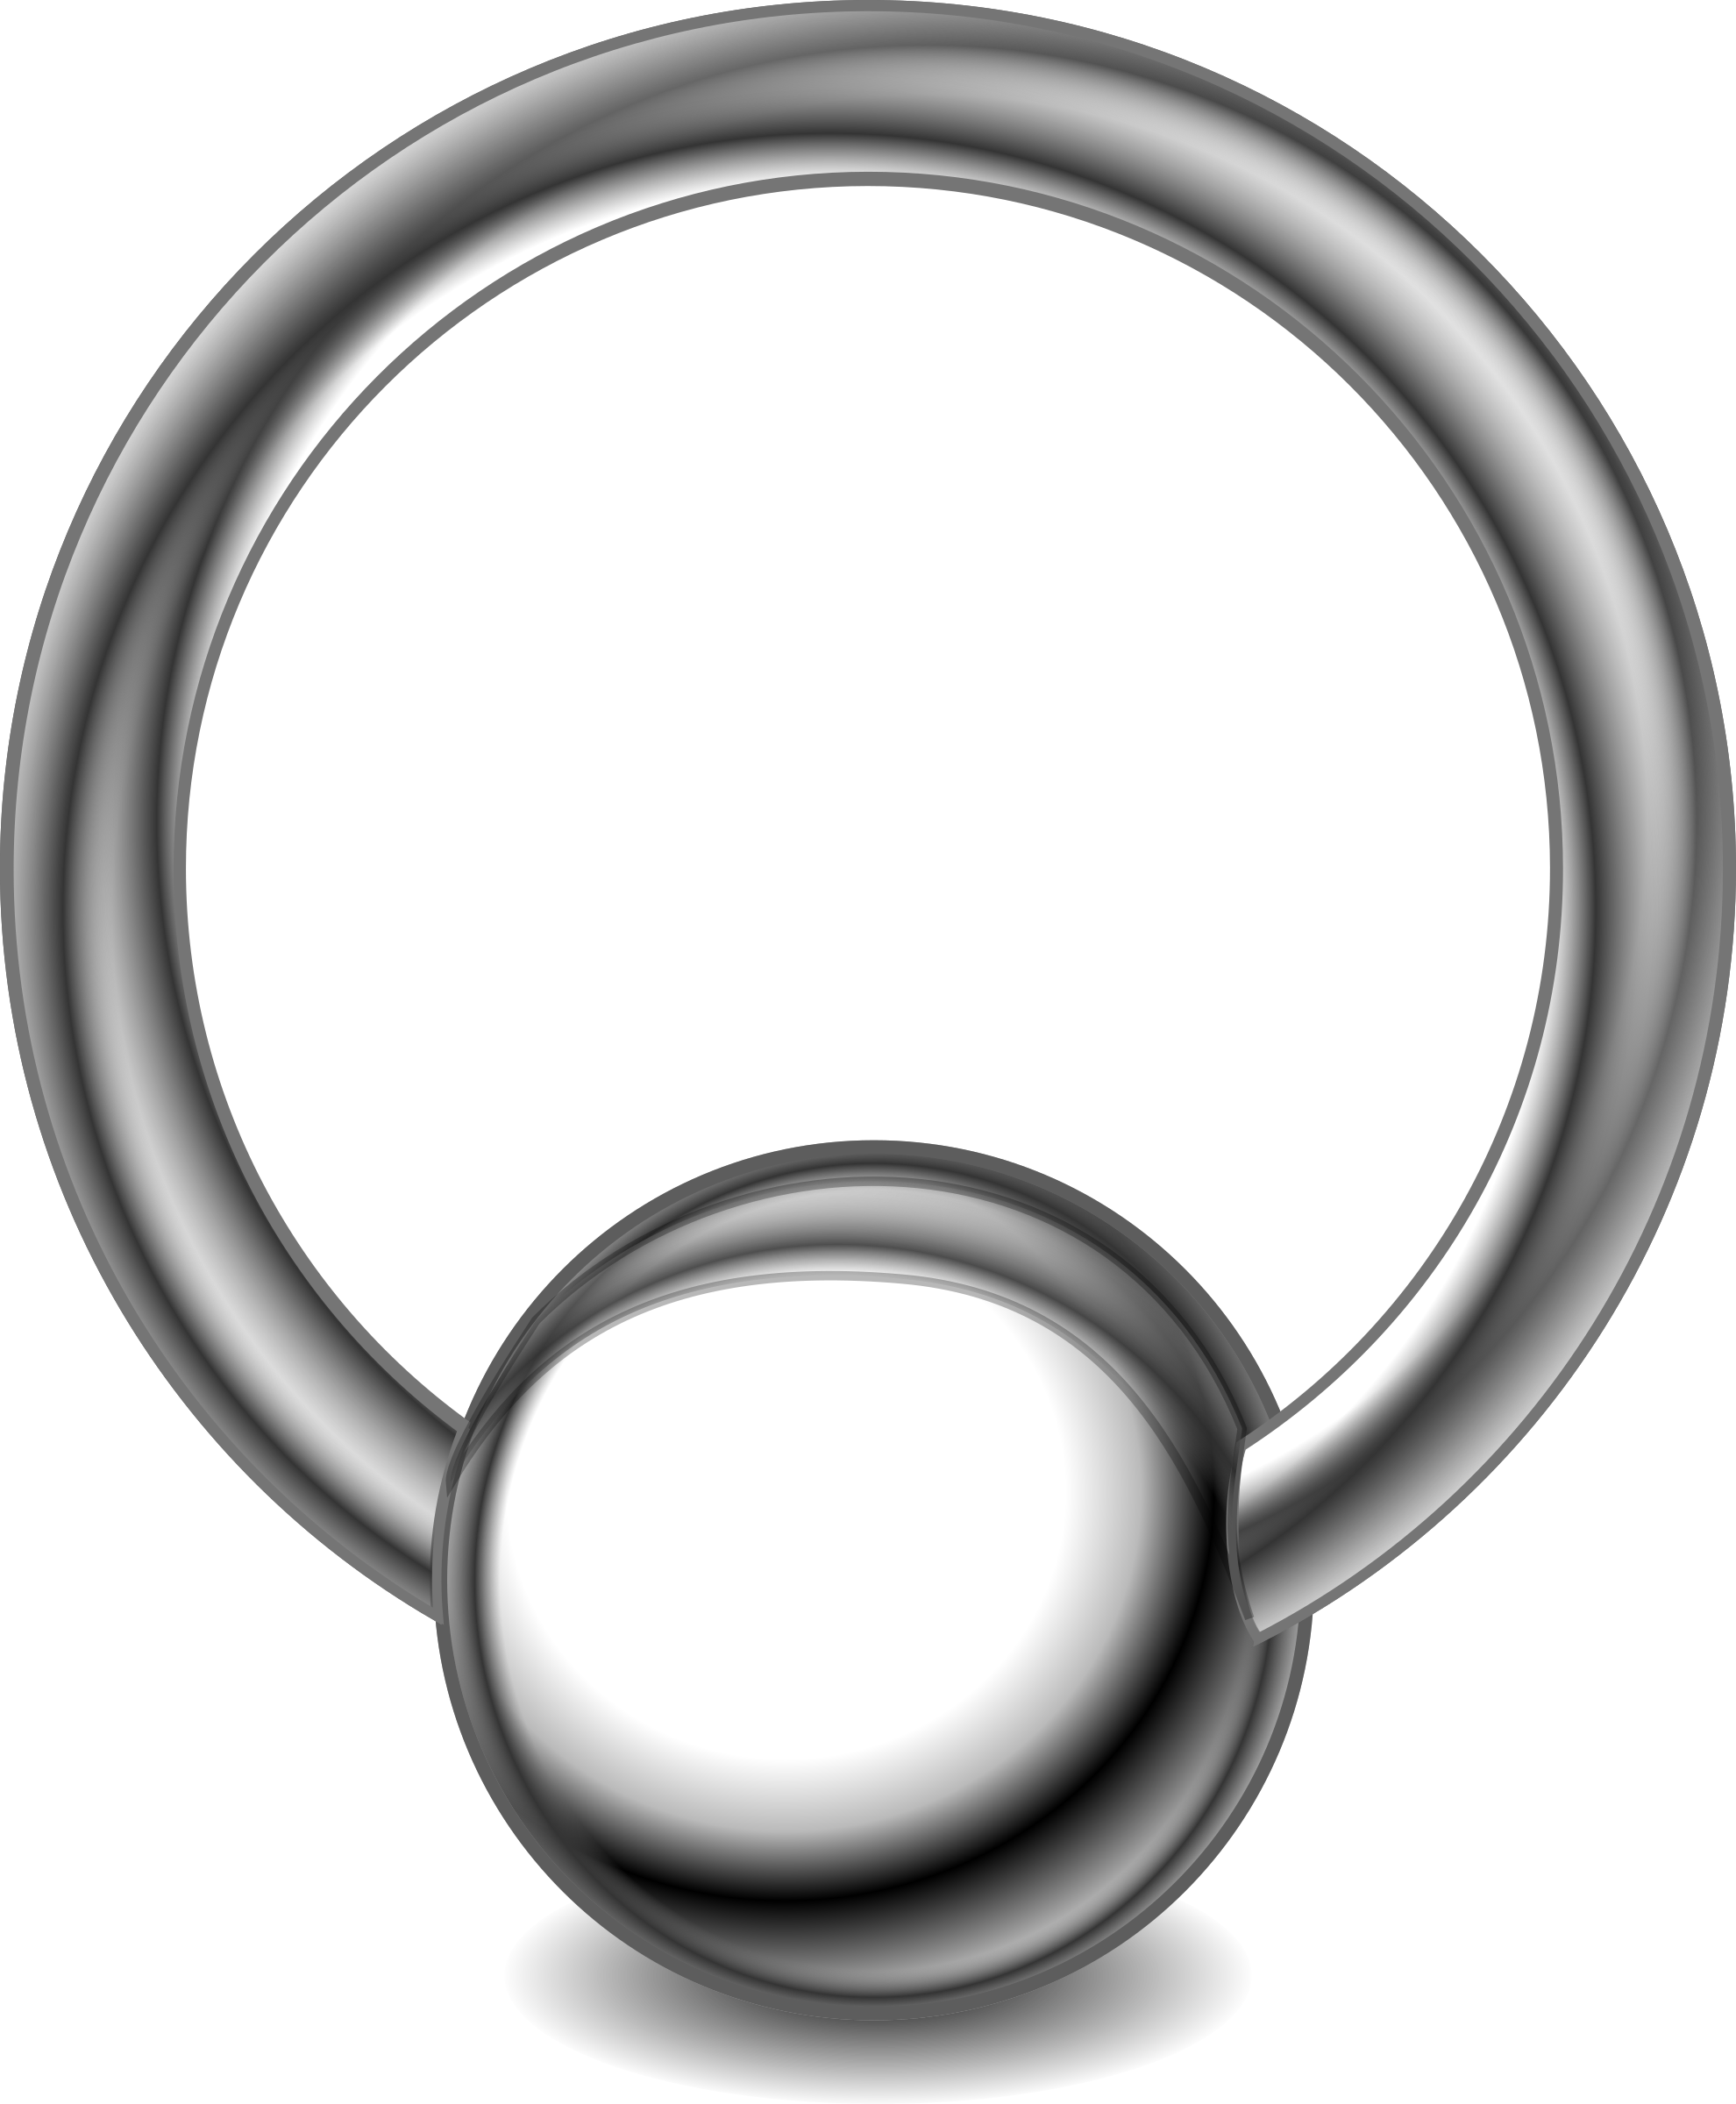 Nose piercing png. Ring icons free and